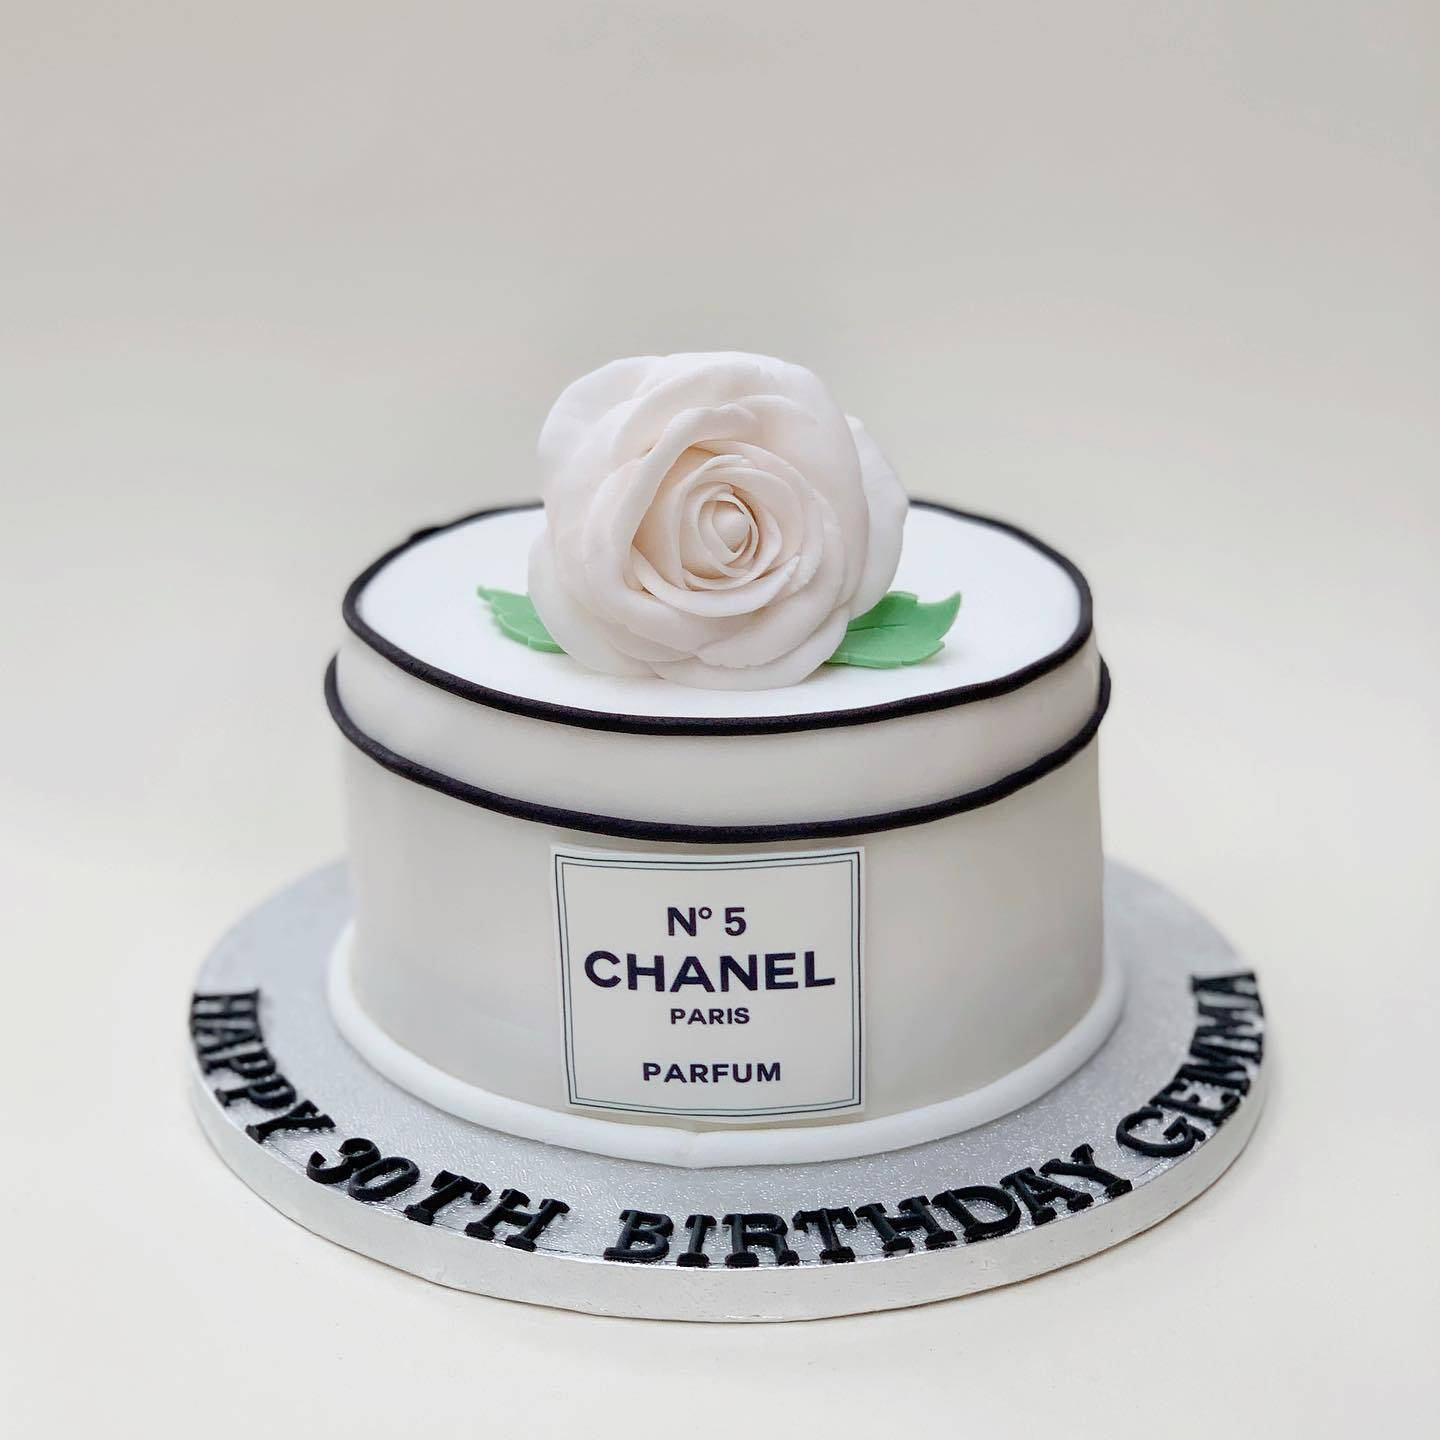 Bespoke Birthday cake with fondant rose and edible print